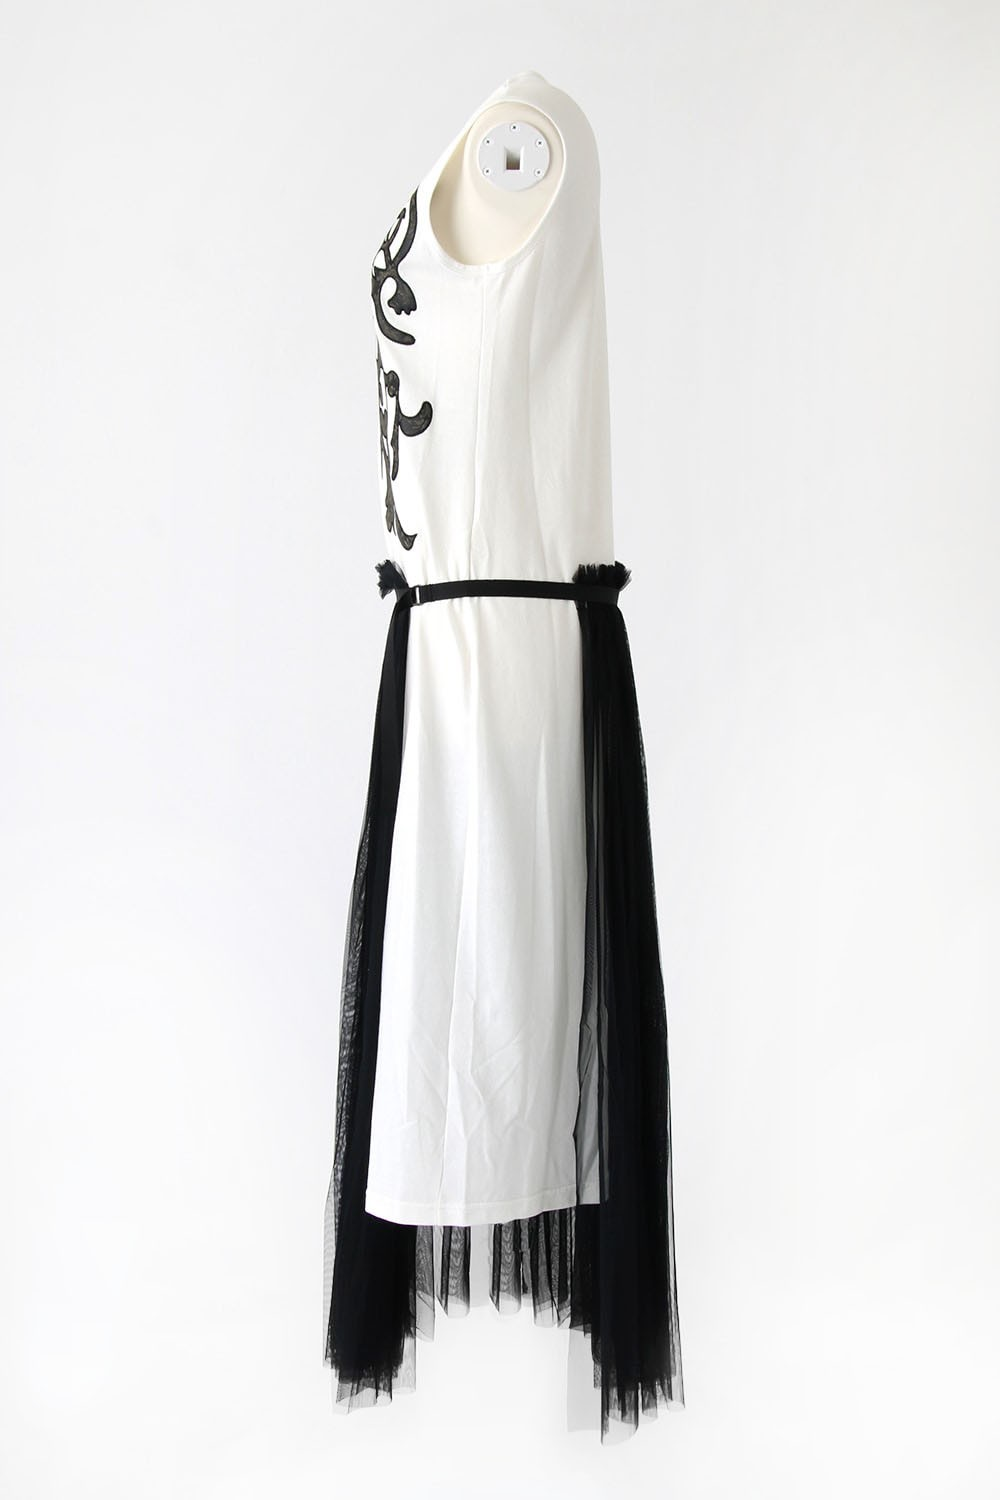 LEATHER APPLIQUE JERSEY DRESS - SATOKO OZAWA